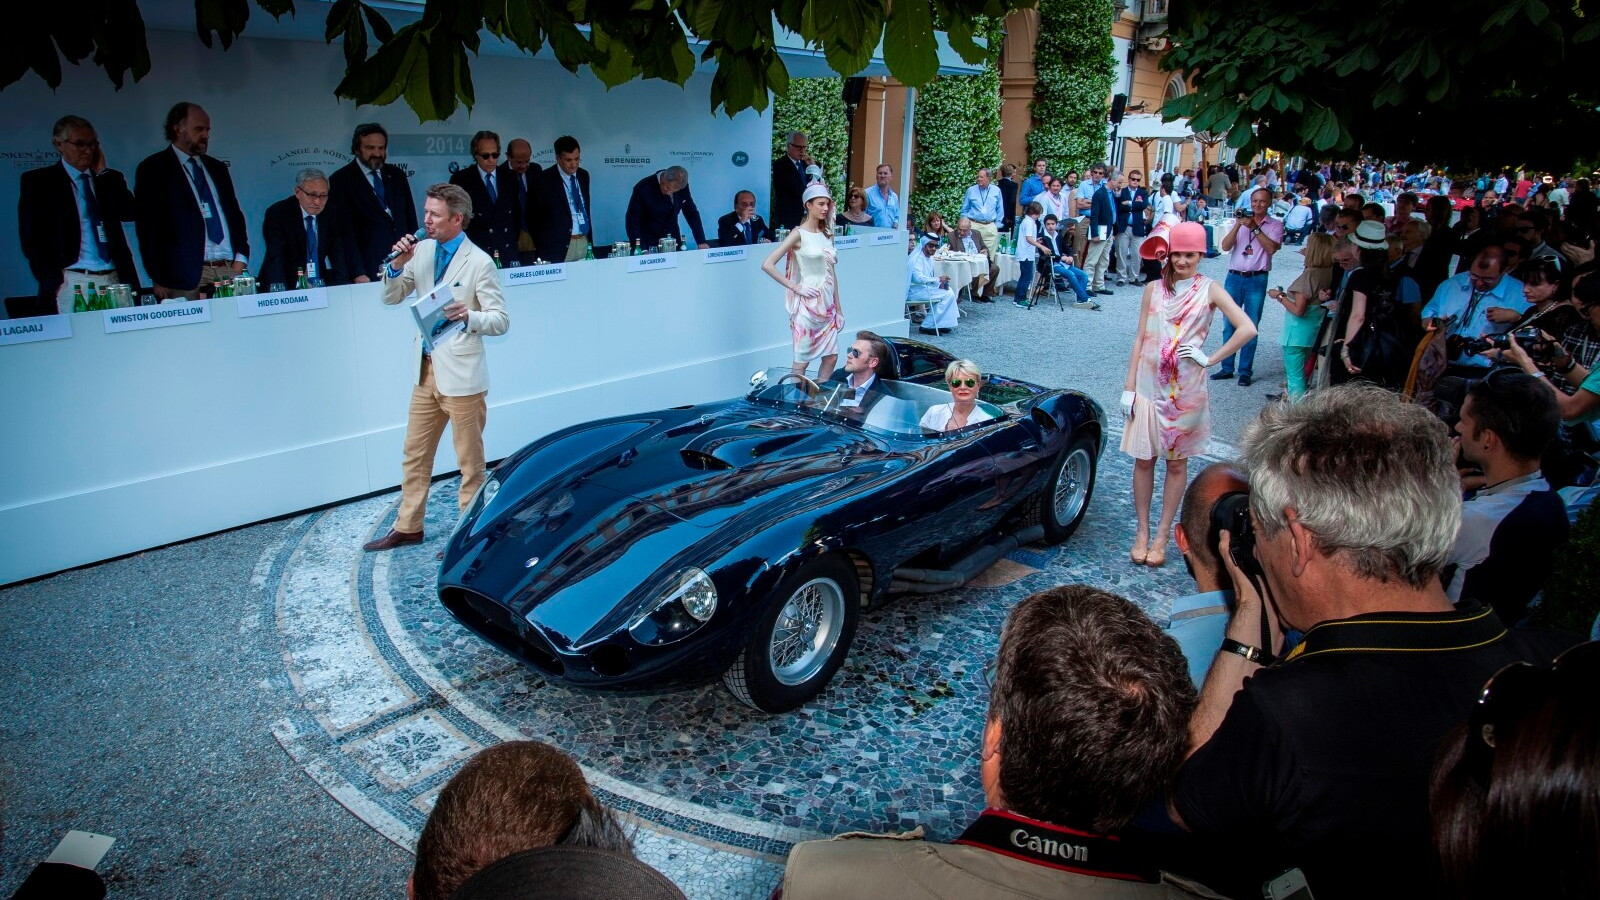 1956 Maserati 450S at the Concorso d'Eleganza Villa d'Este 2014